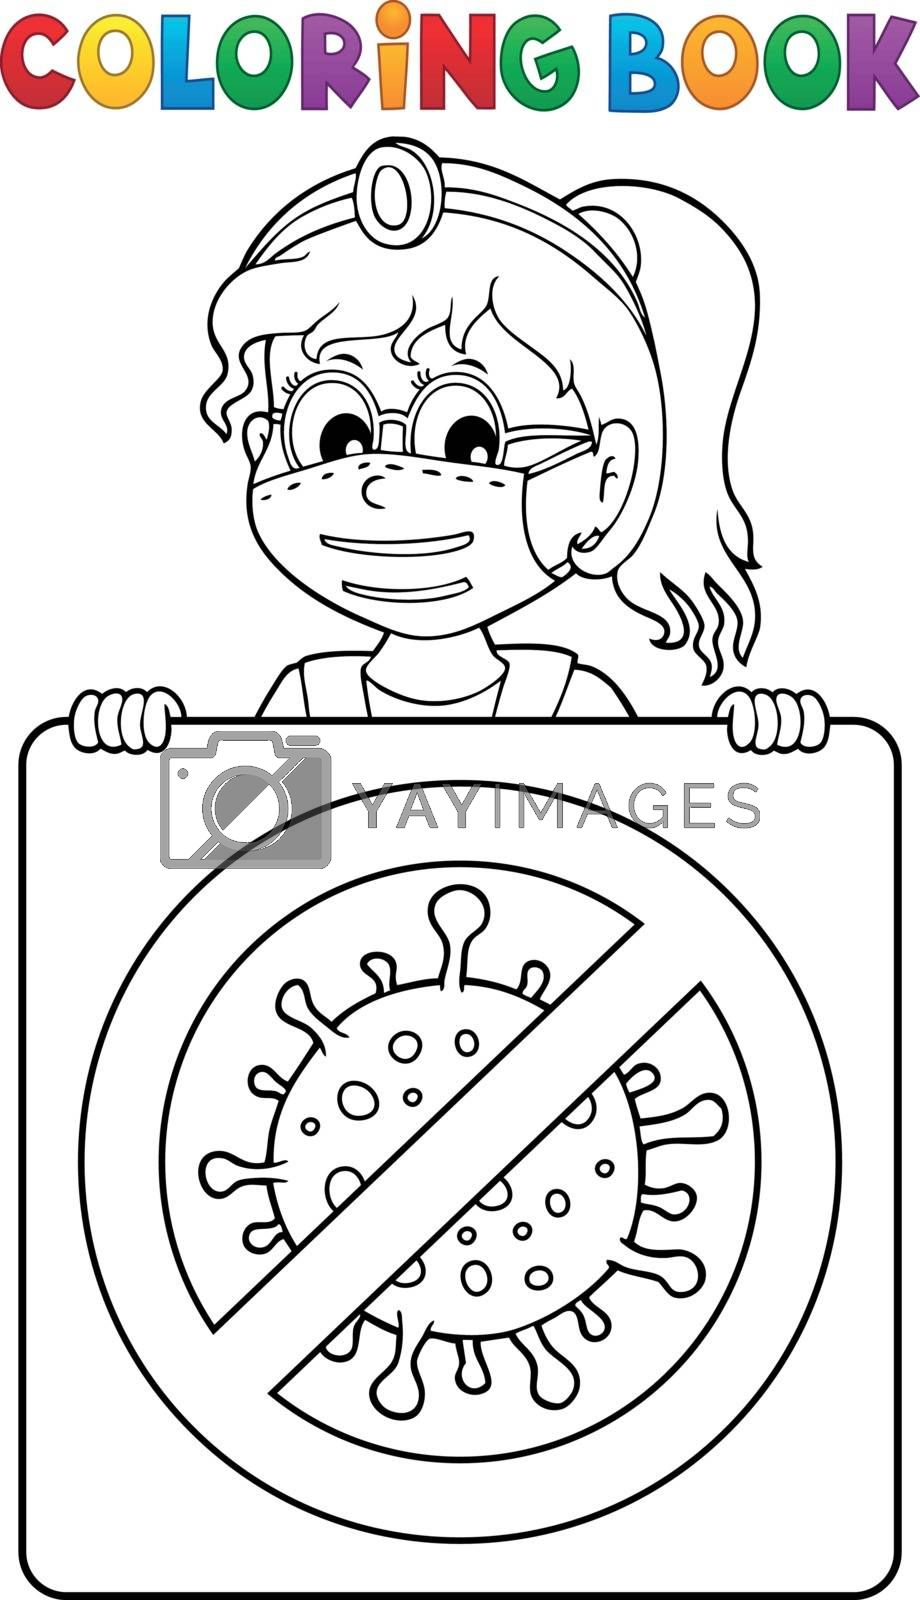 Coloring book doctor with sign theme 2 - eps10 vector illustration.